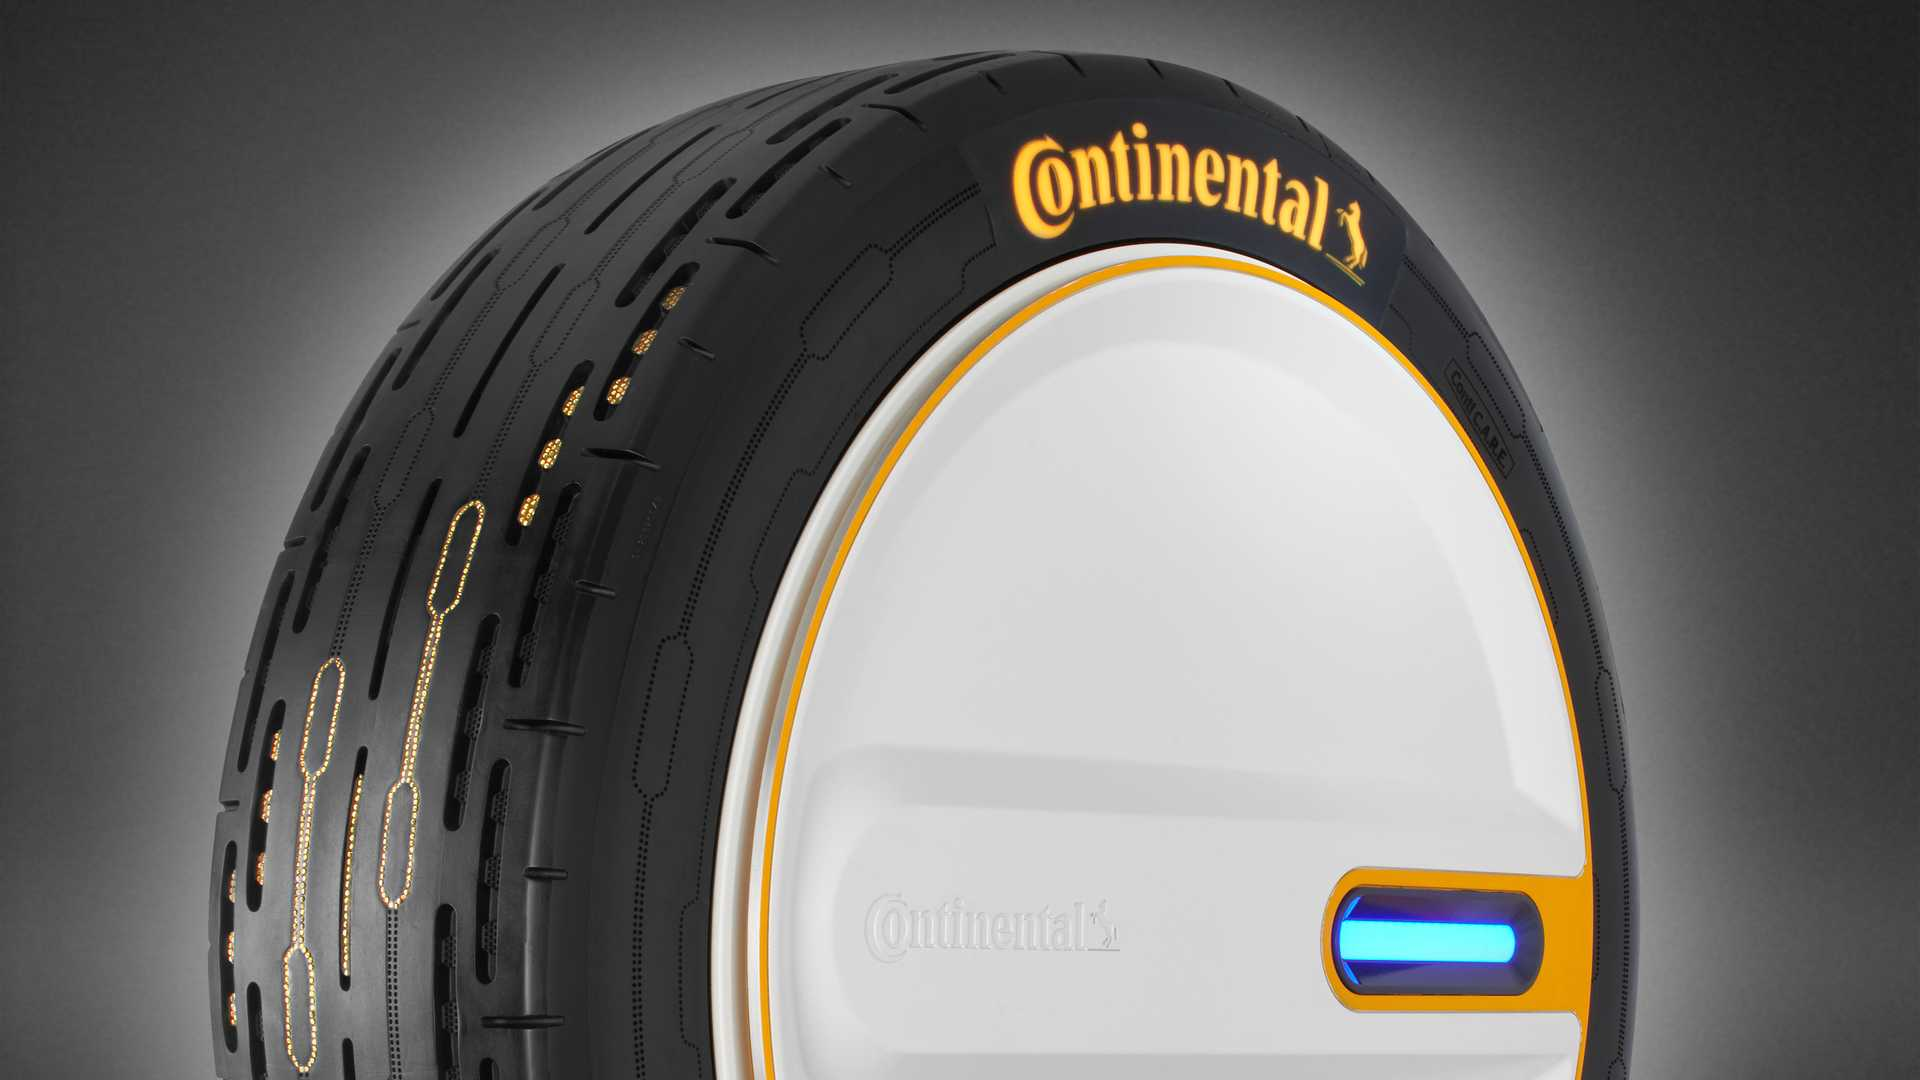 This amazing tyre can adjust its pressure on the fly to save fuel